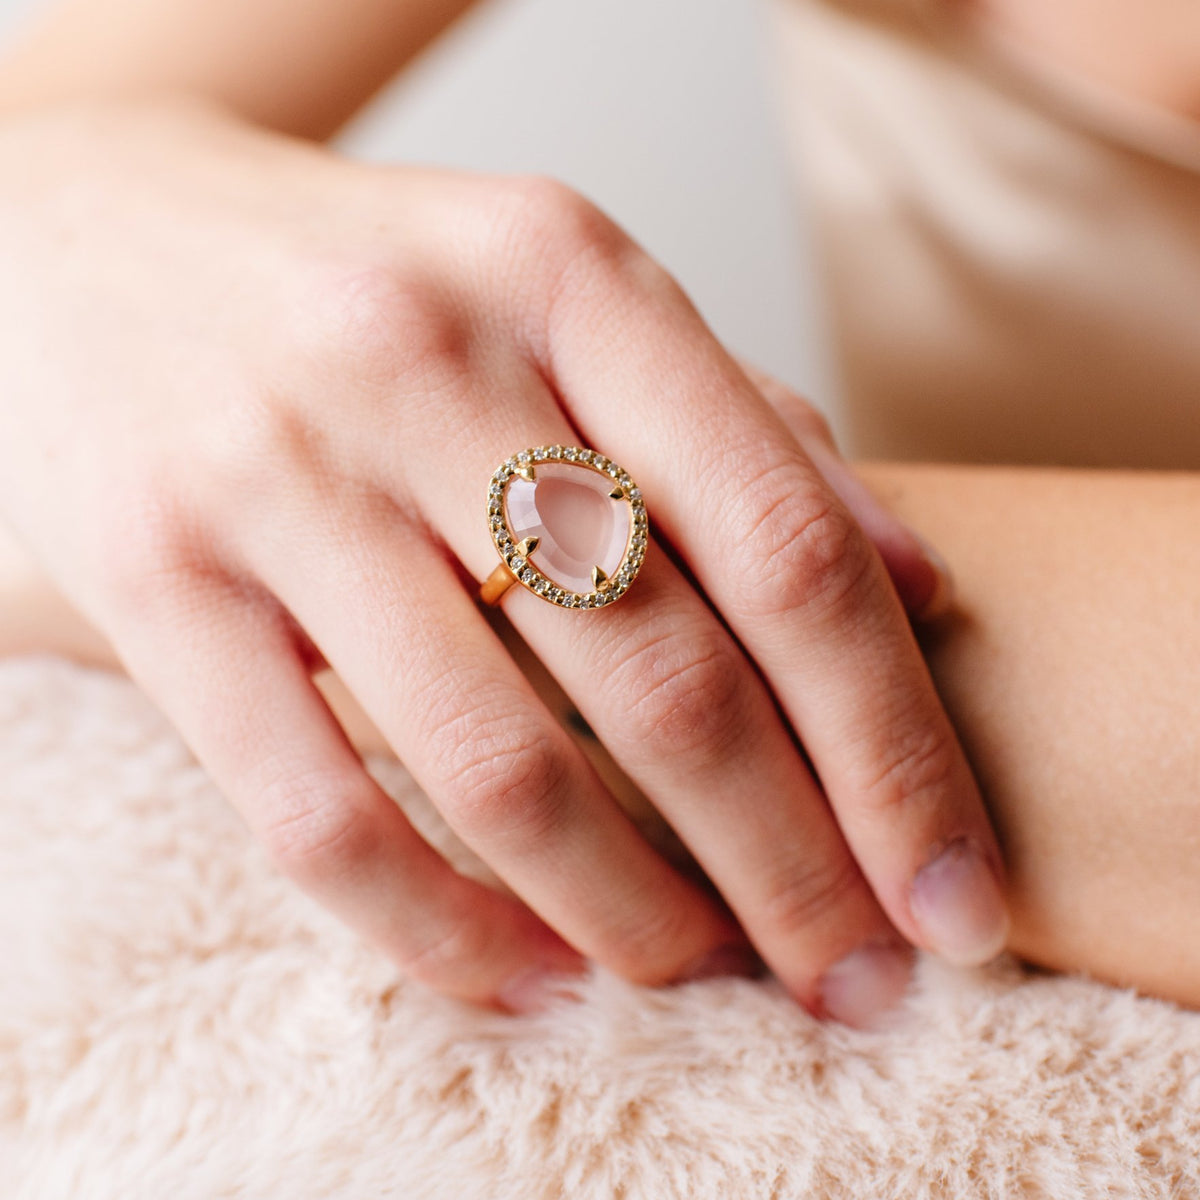 DREAM LUNA COCKTAIL RING - PINK QUARTZ, CUBIC ZIRCONIA & GOLD - SO PRETTY CARA COTTER